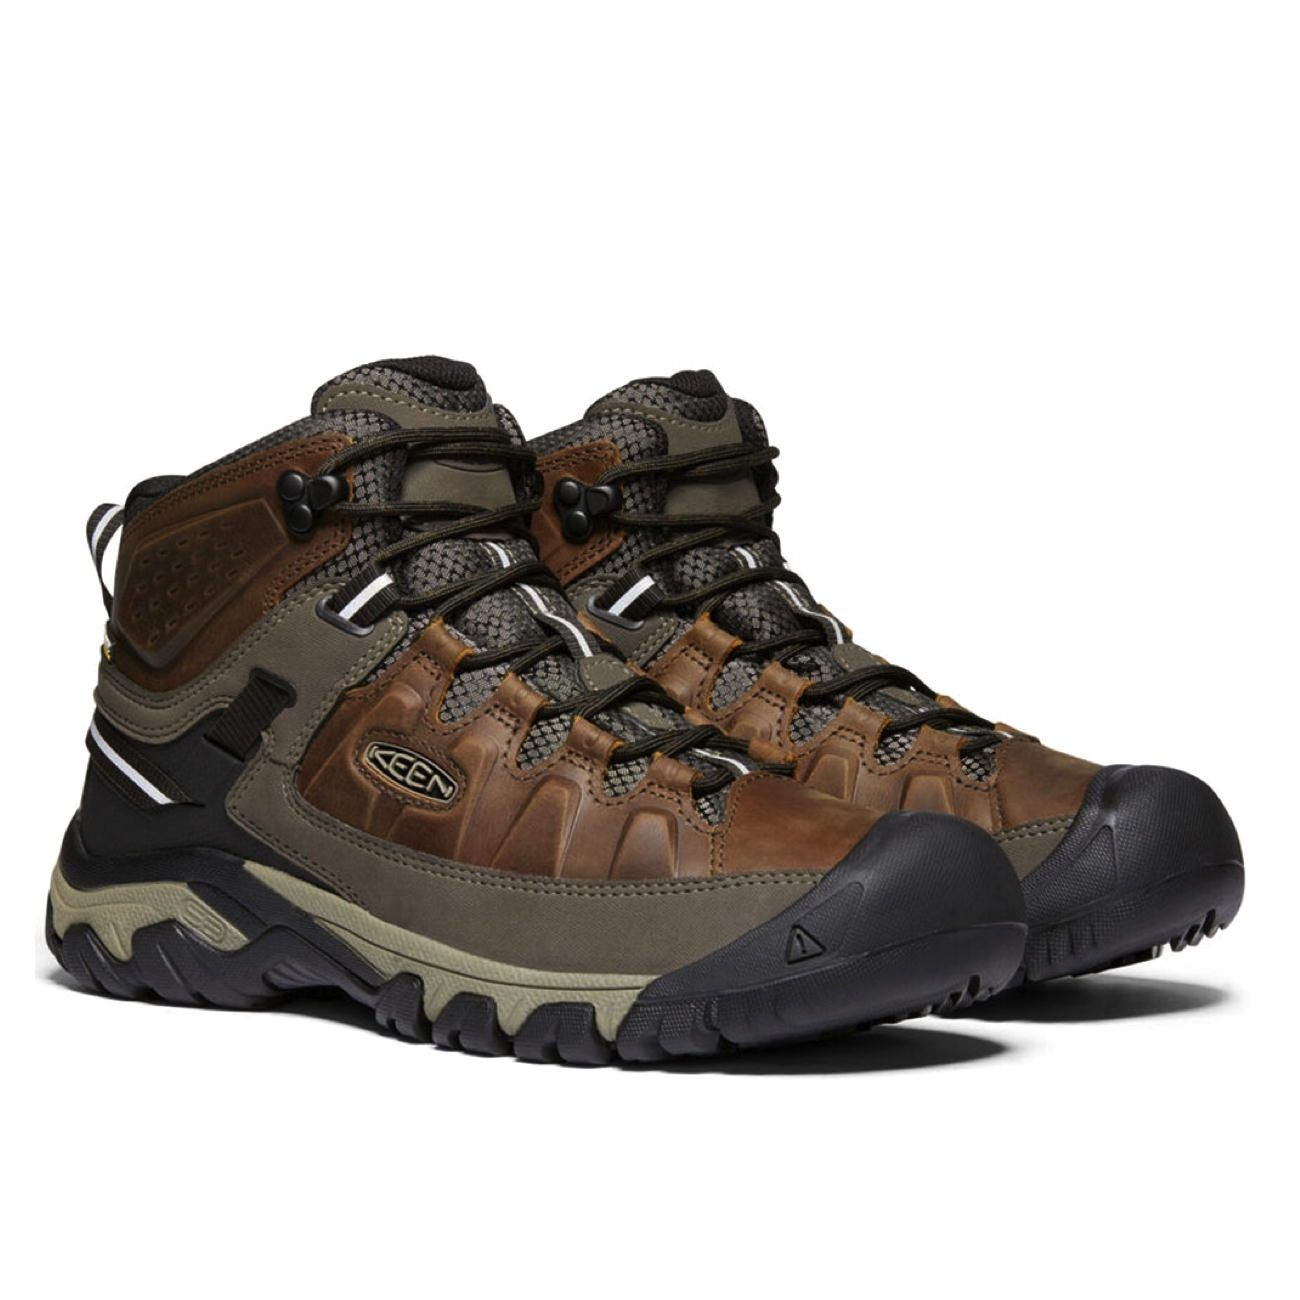 Keen, Targhee III Mid WP, Mens, Boot, Chestnut Mulch Hiking Boots Keen Chestnut Mulch 8